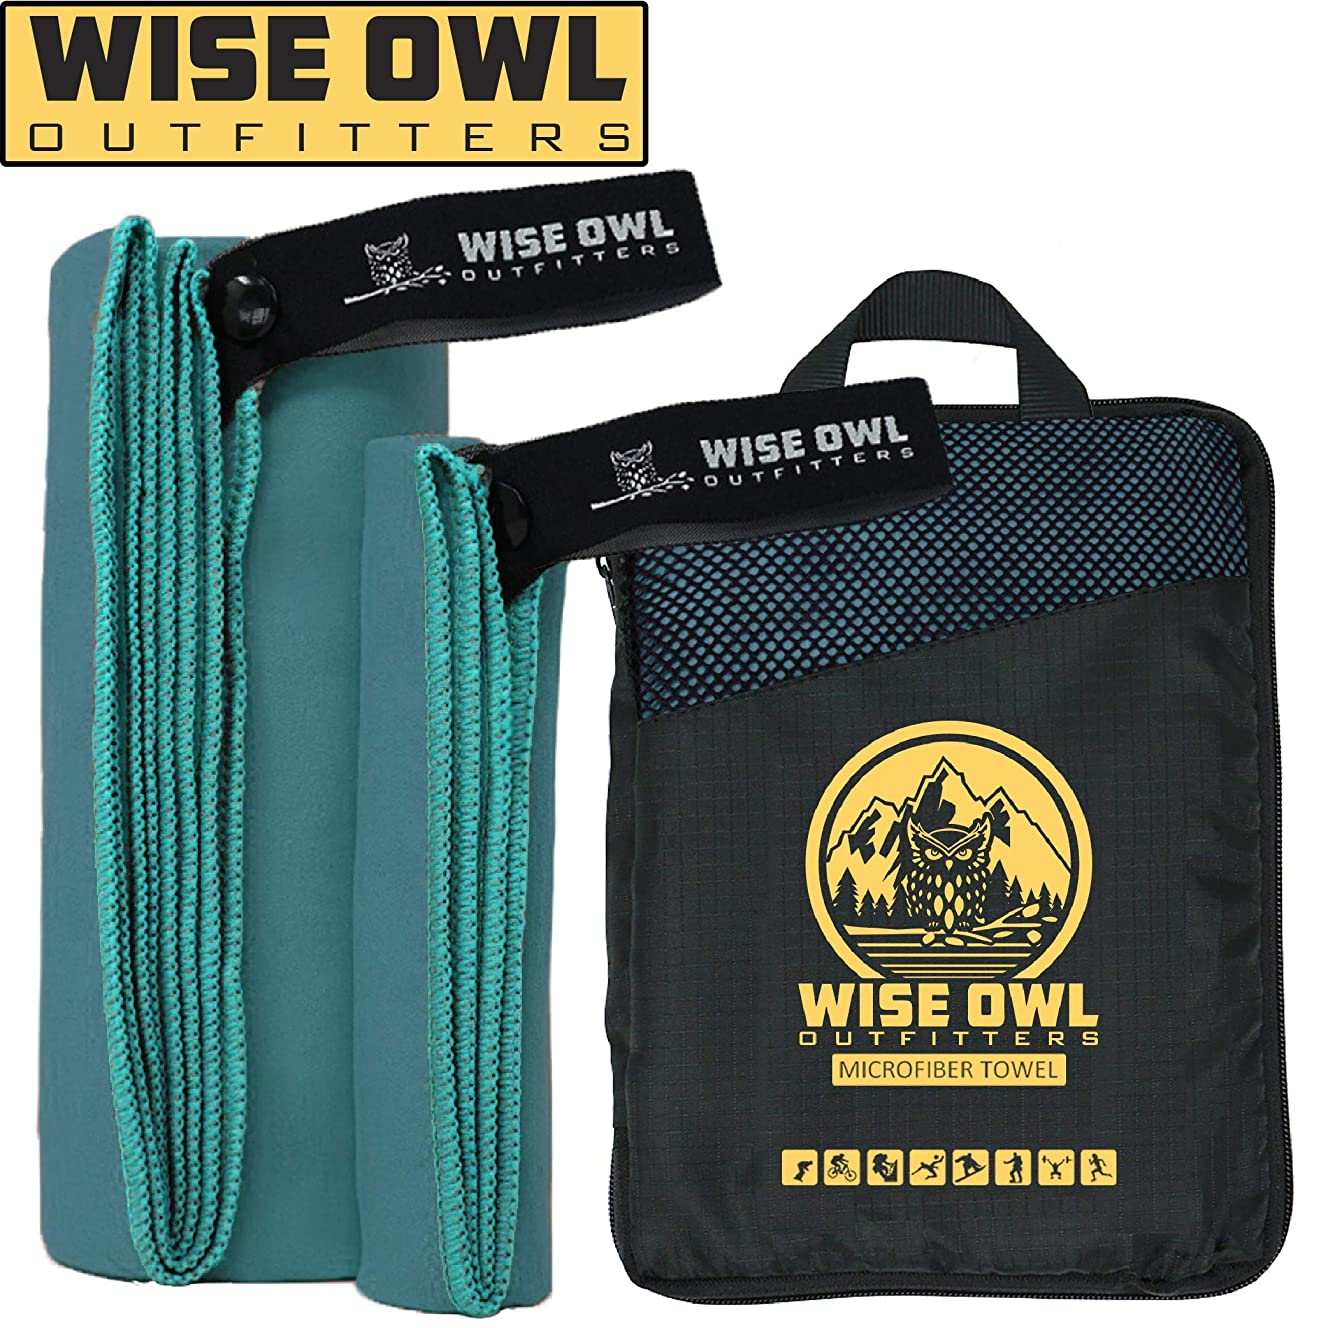 Wise Owl Outfitters Camping Towel - Ultra Soft Compact Quick Dry Microfiber Best Fitness Beach Hiking Yoga Travel Sports Backpacking & The Gym Fast Drying & Free Bonus Washcloth Hand Towel